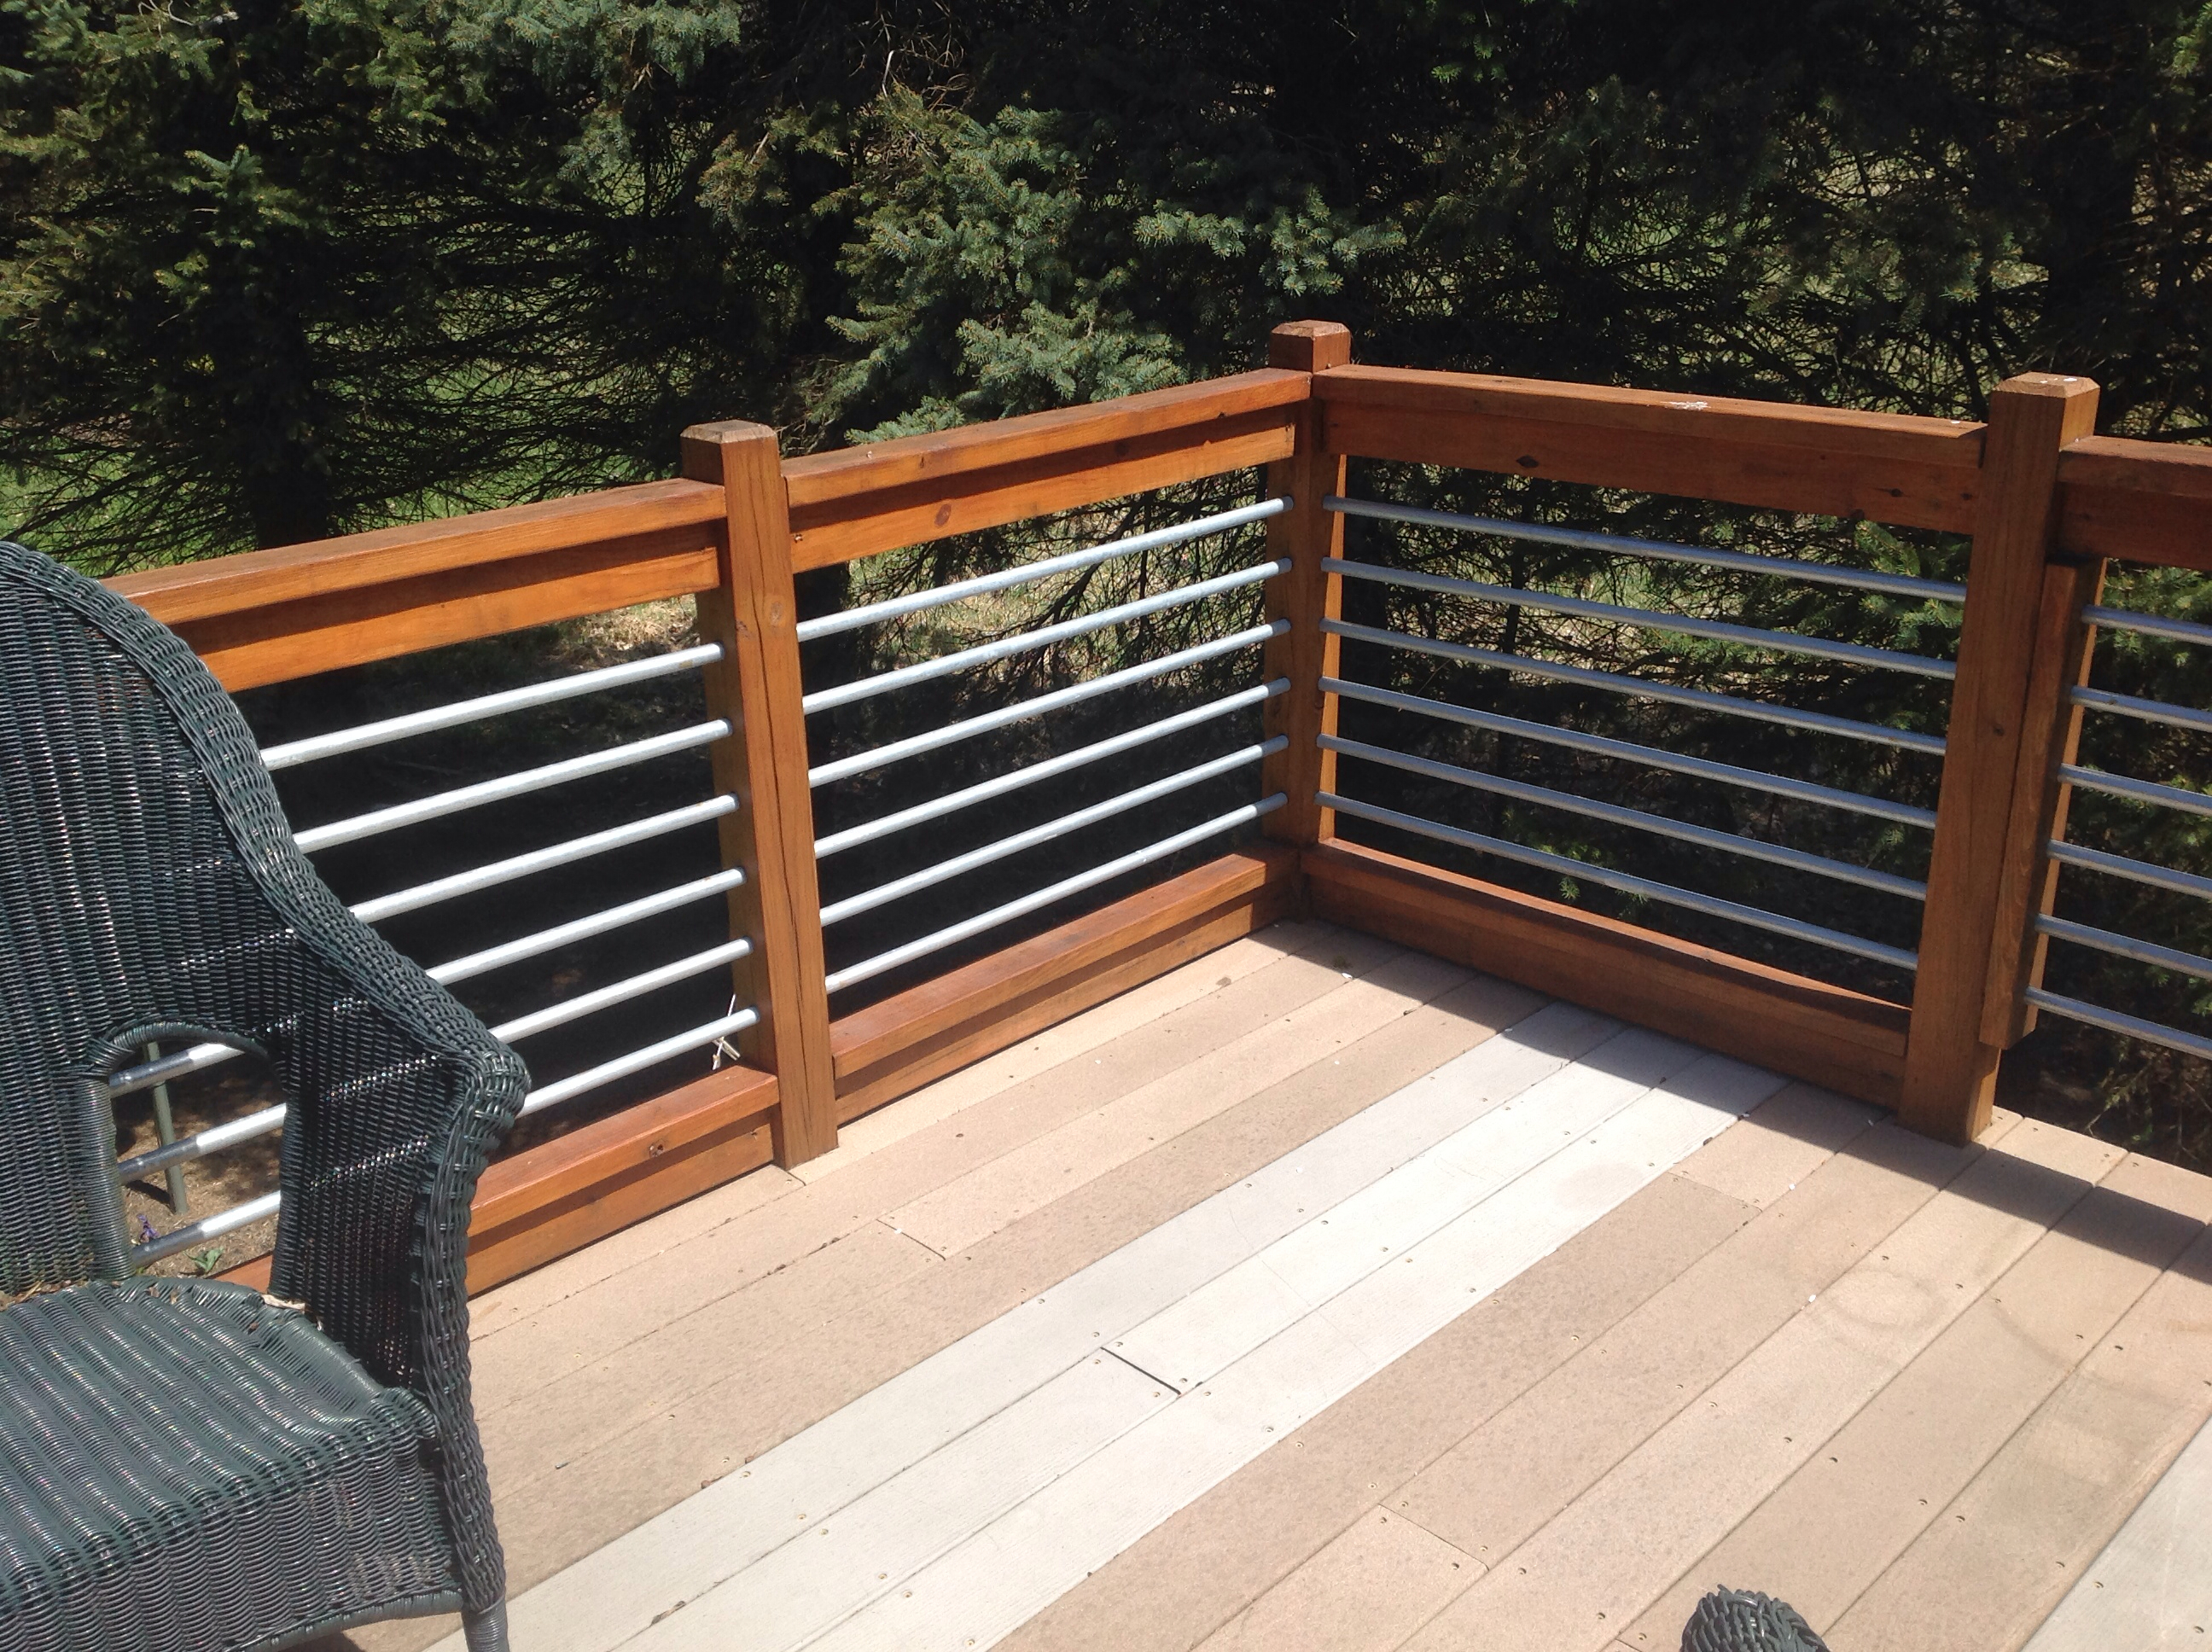 Horizontal deck railing wood patio decks designs pictures patio with sizing 2592 x 1936